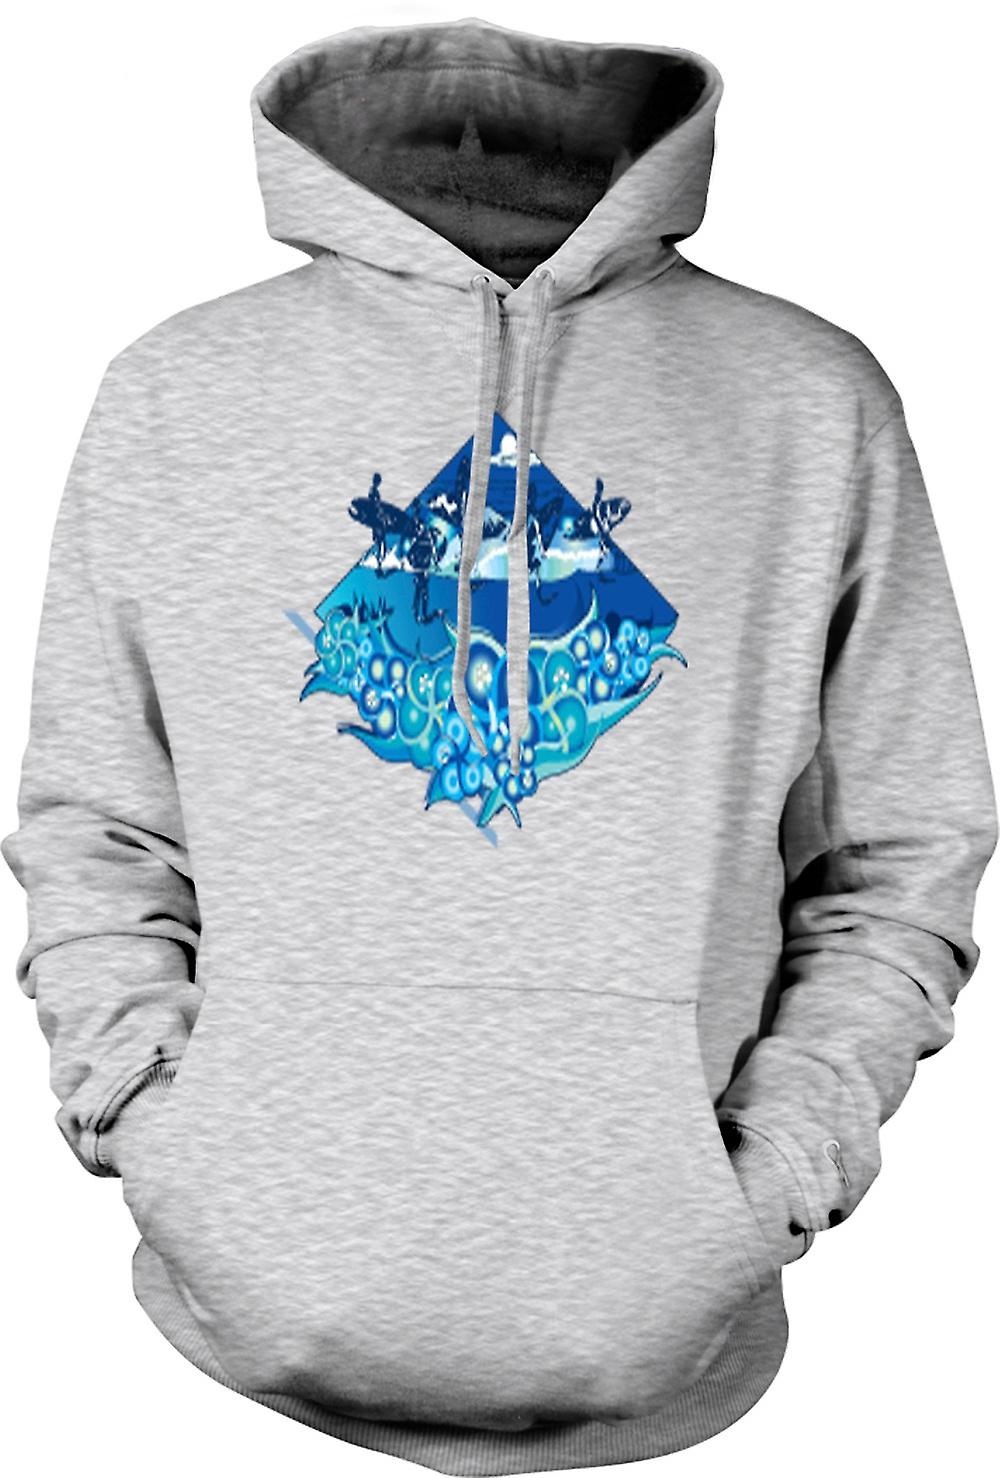 Mens Hoodie - Surfer Design With Waves & Dolphins